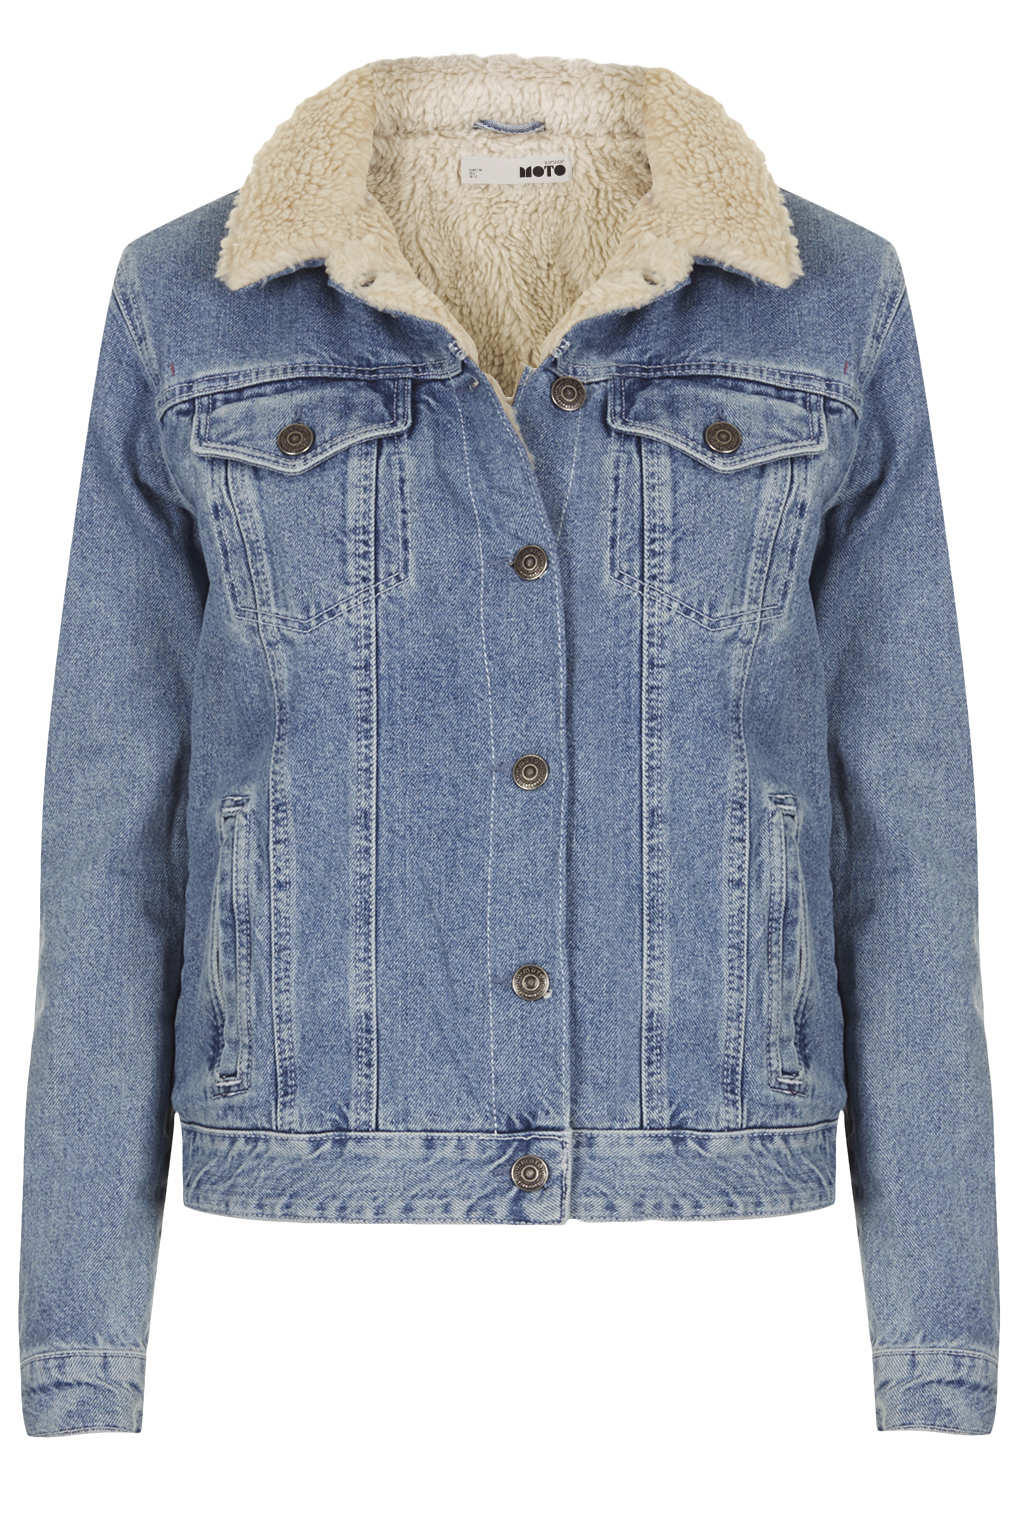 Moto vintage borg denim jacket jackets from topshop for Womens denim shirts topshop